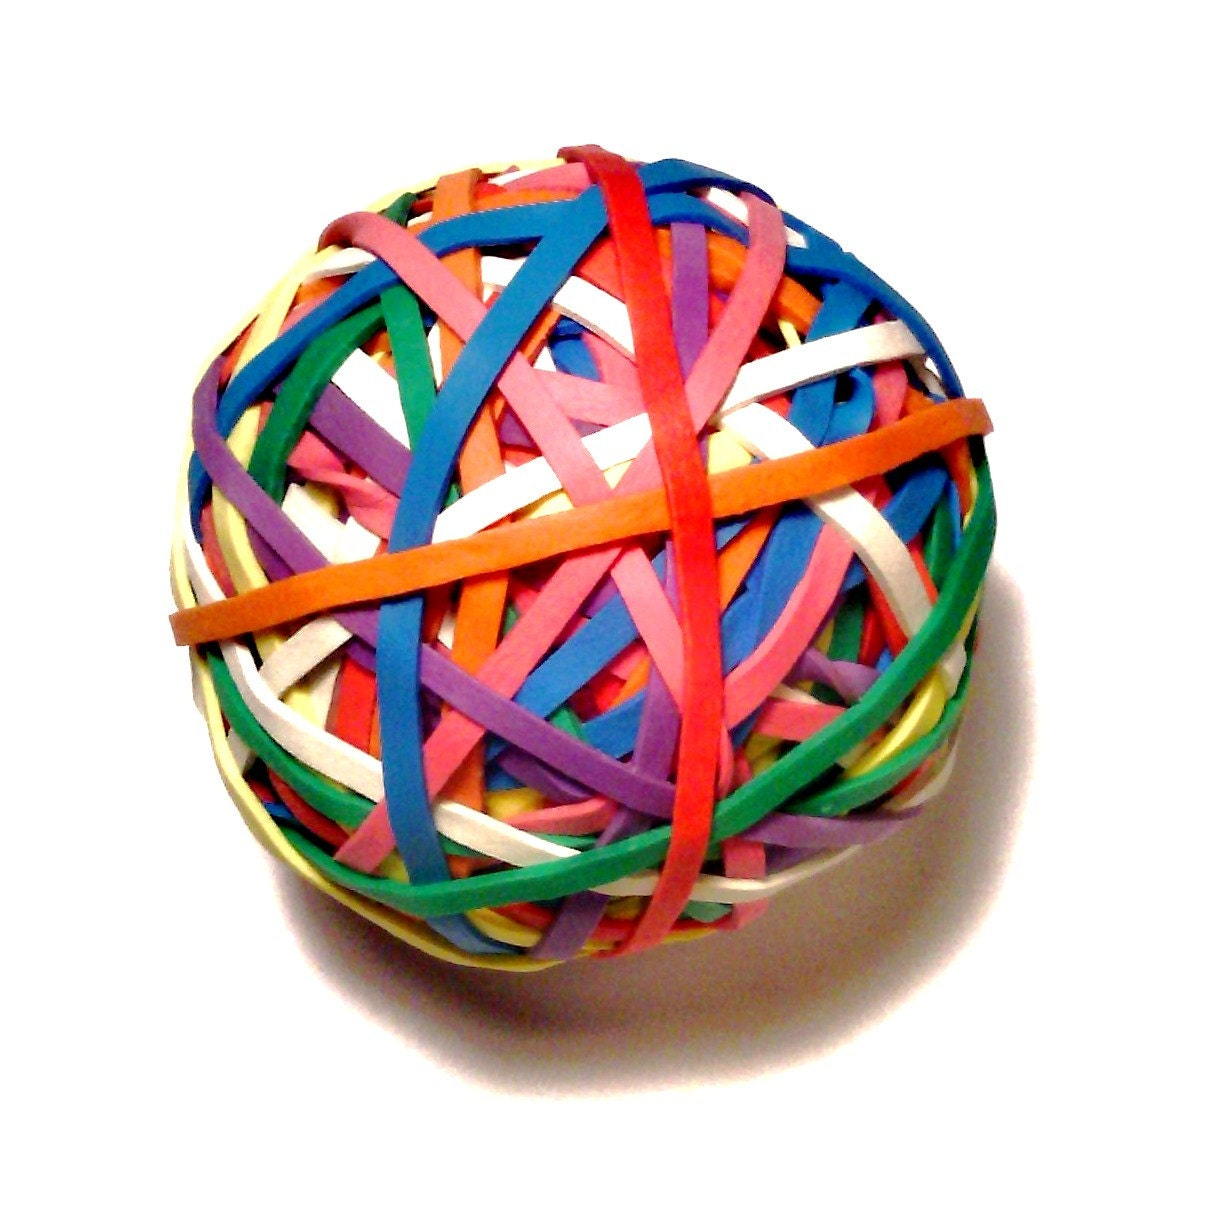 Office Rubber Band Ball Rainbow Colored 2.5 inches 2